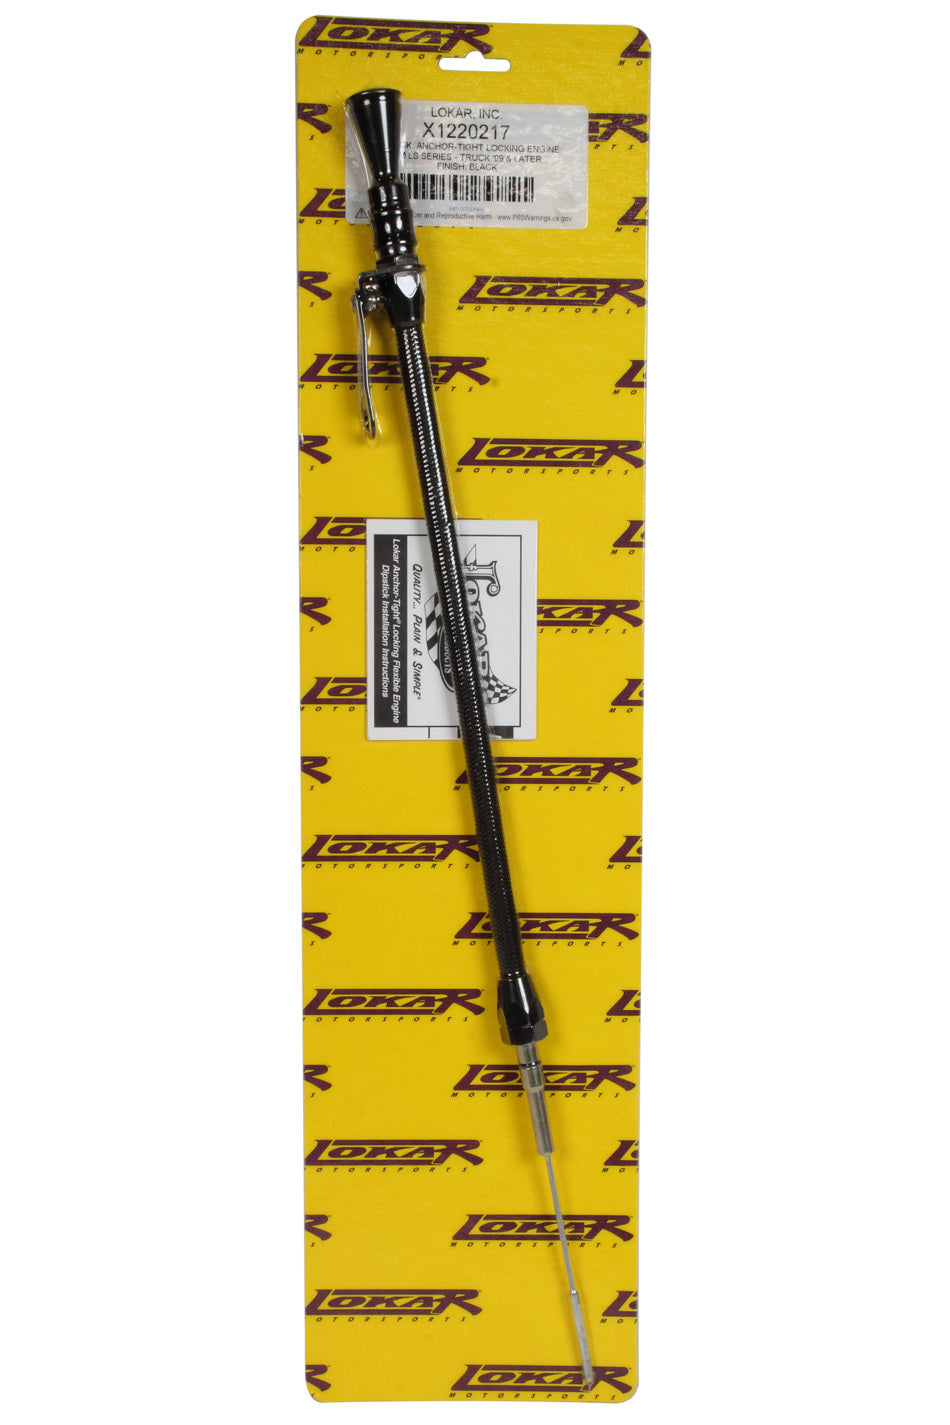 Lokar X1220217 Midnight Series Anchor Tight Locking dipstick